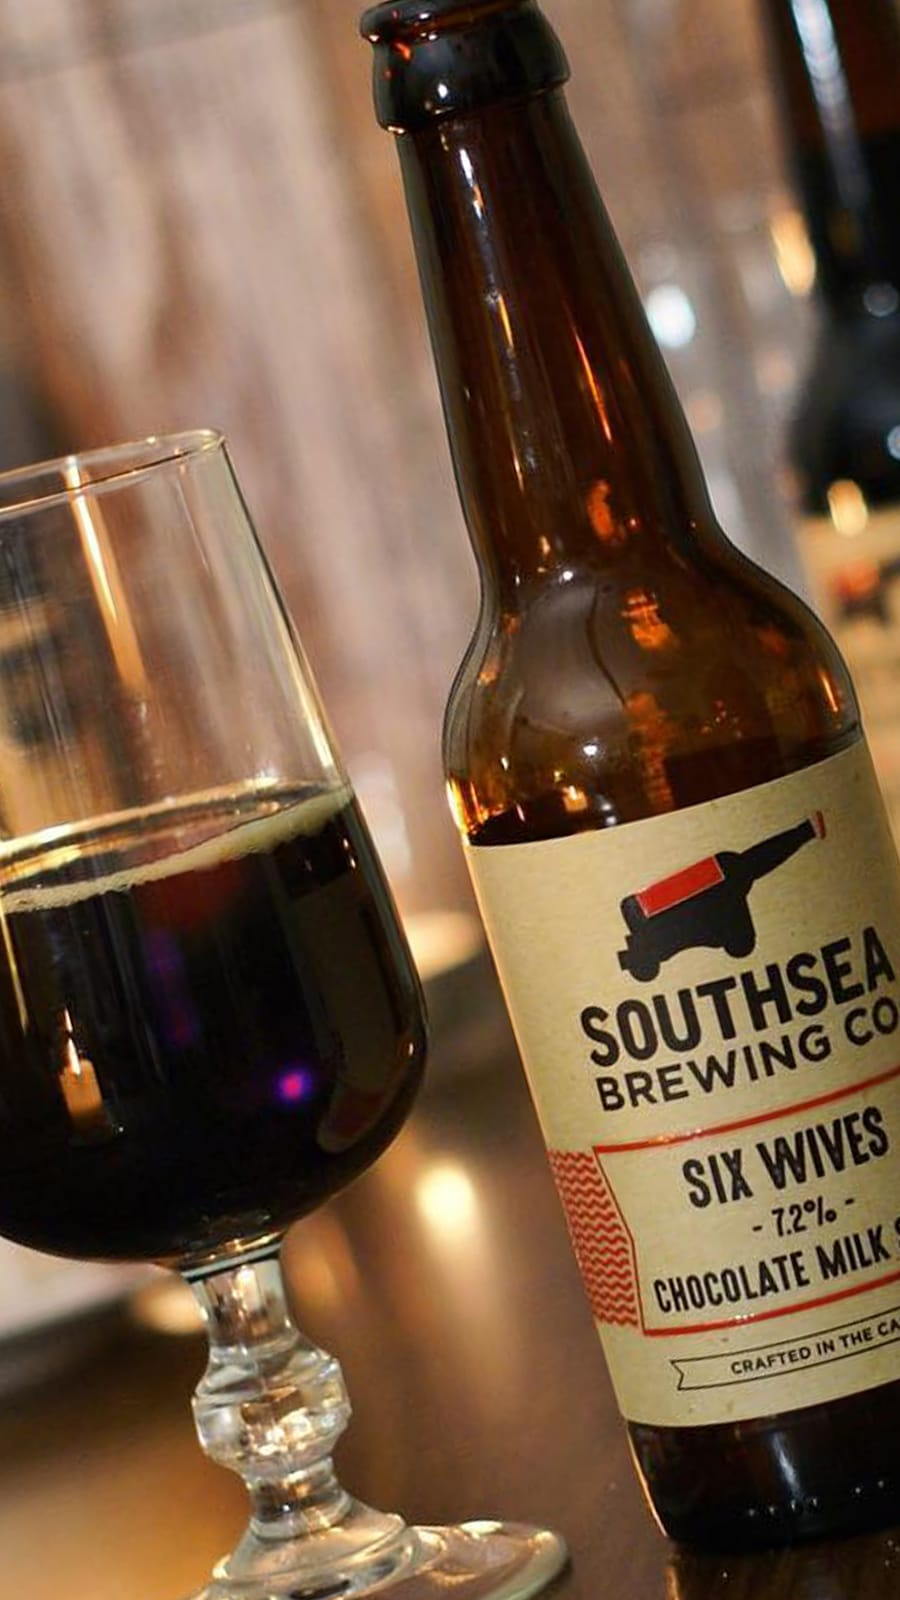 Southsea Brewing Co.labels -